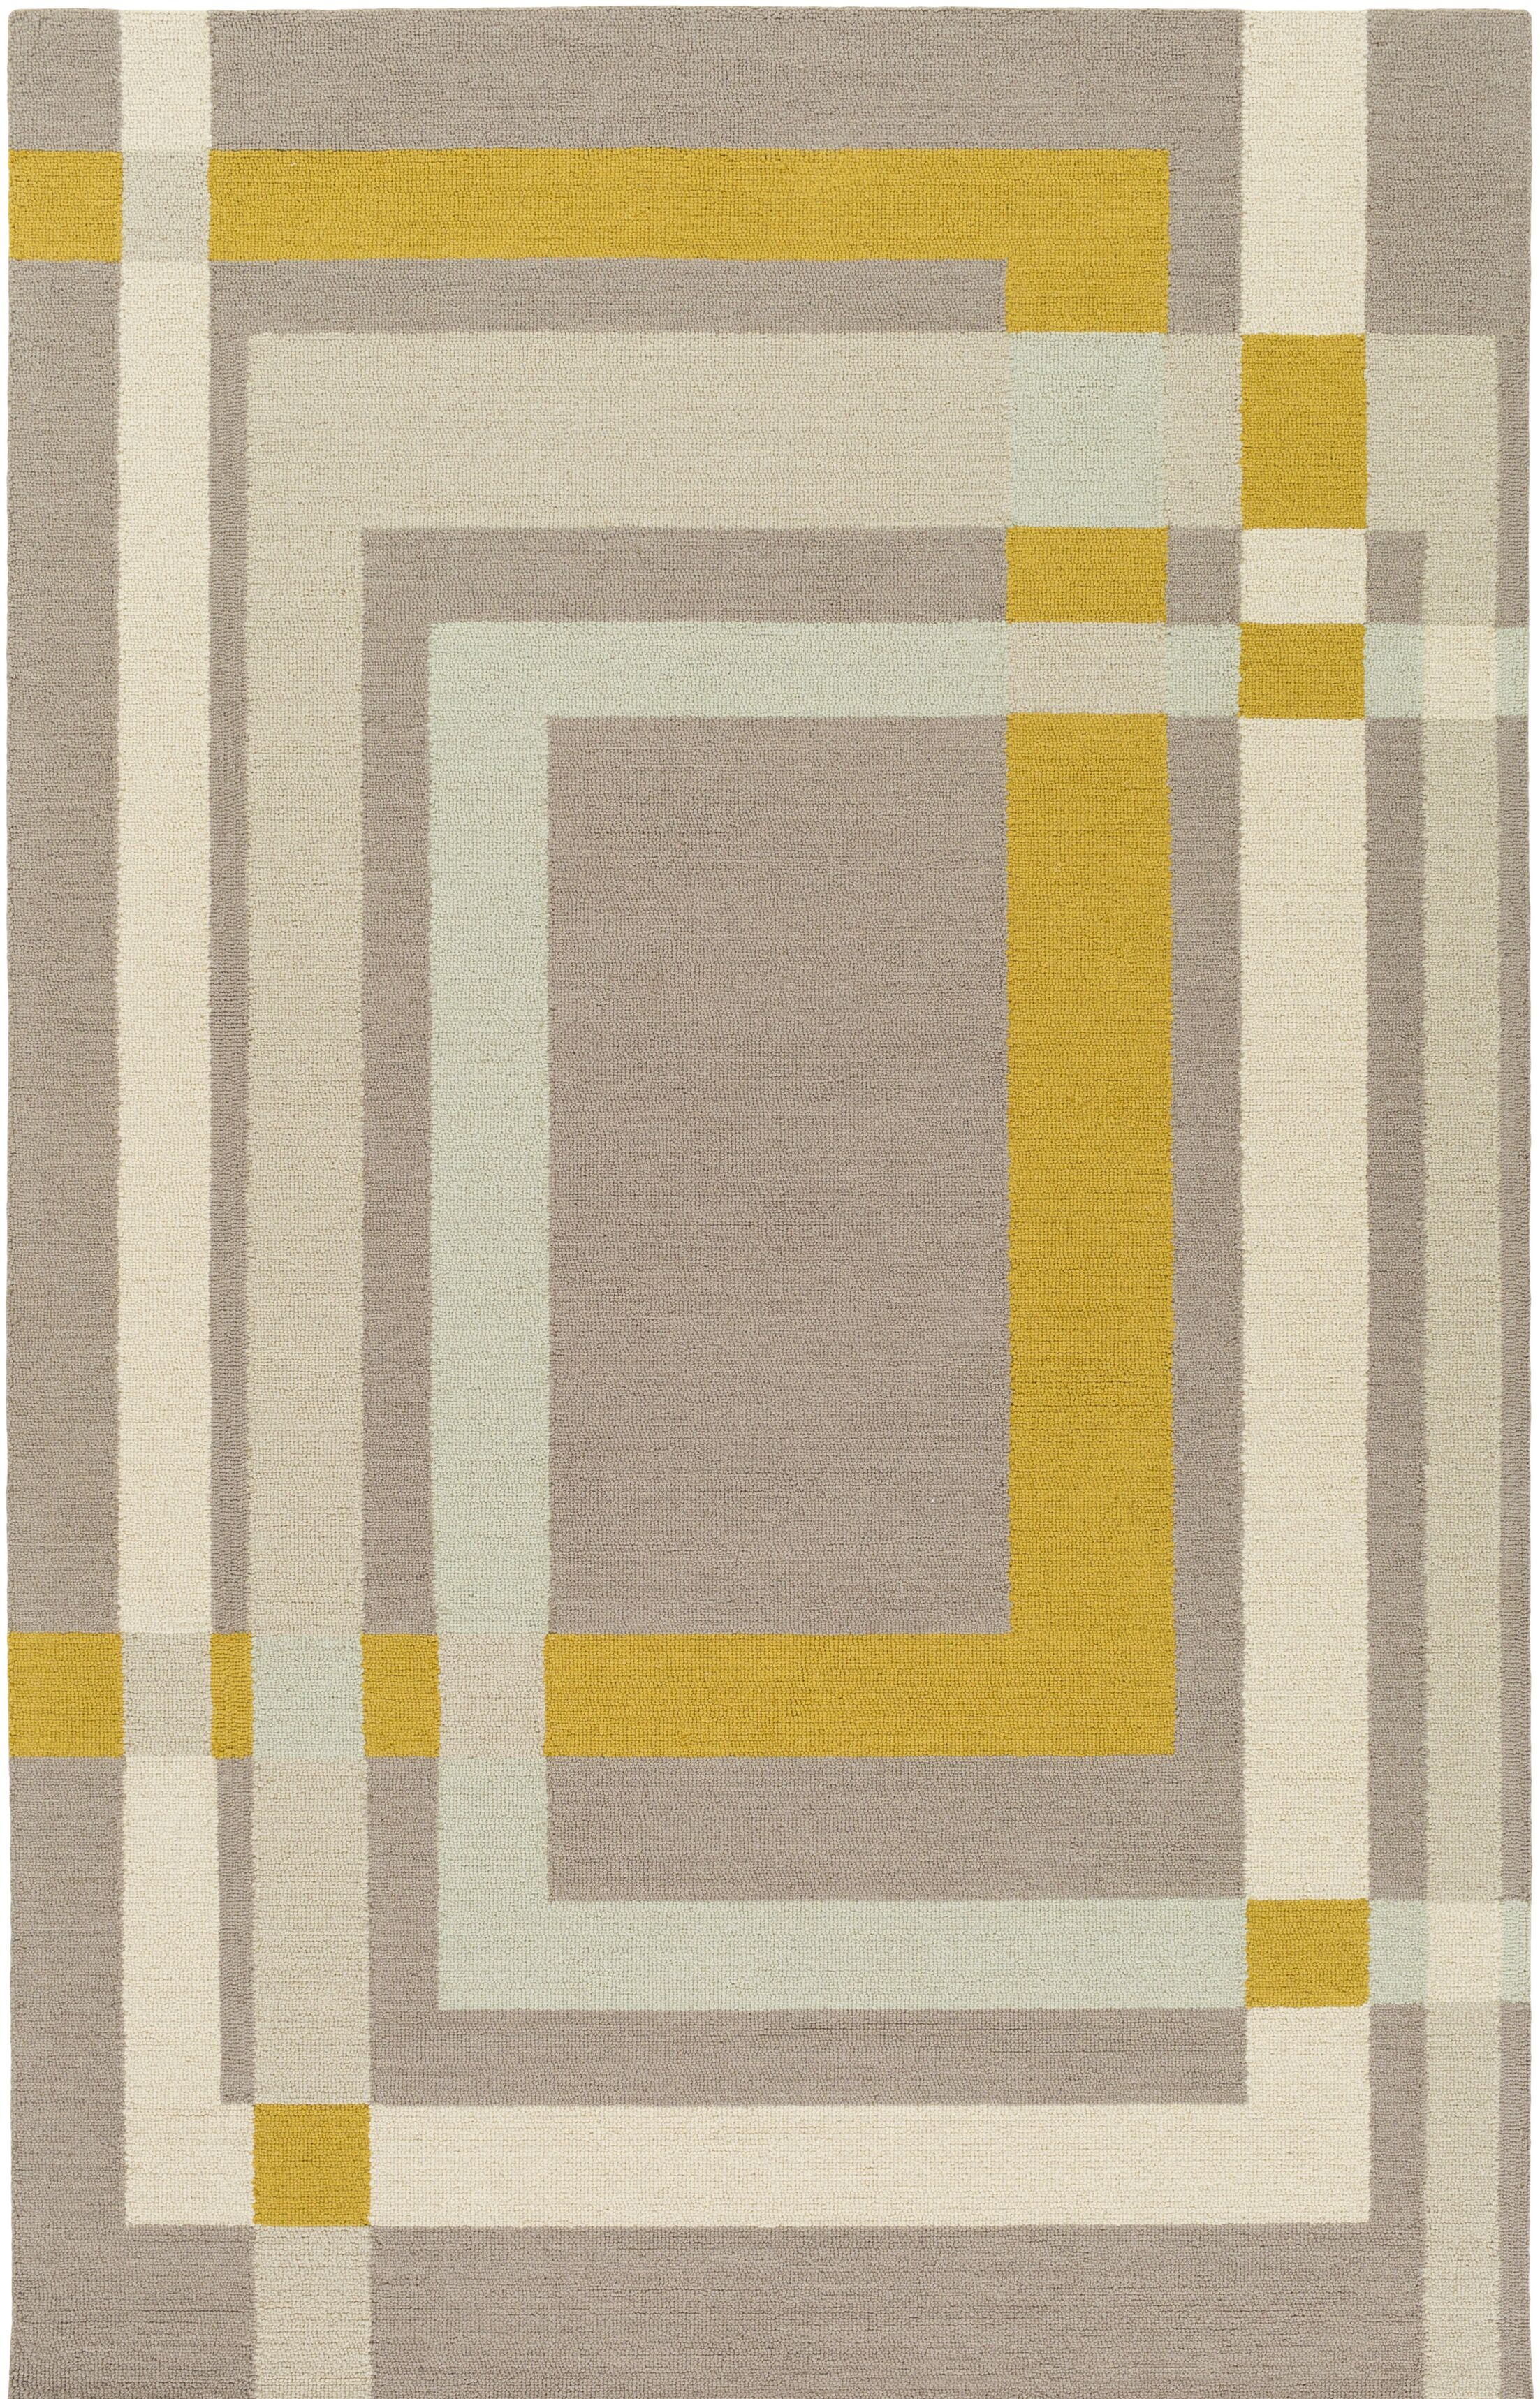 Kismet Color Forms Hand-Tufted Modern Yellow/Cream Area Rug Rug Size: Rectangle 5' x 7'6